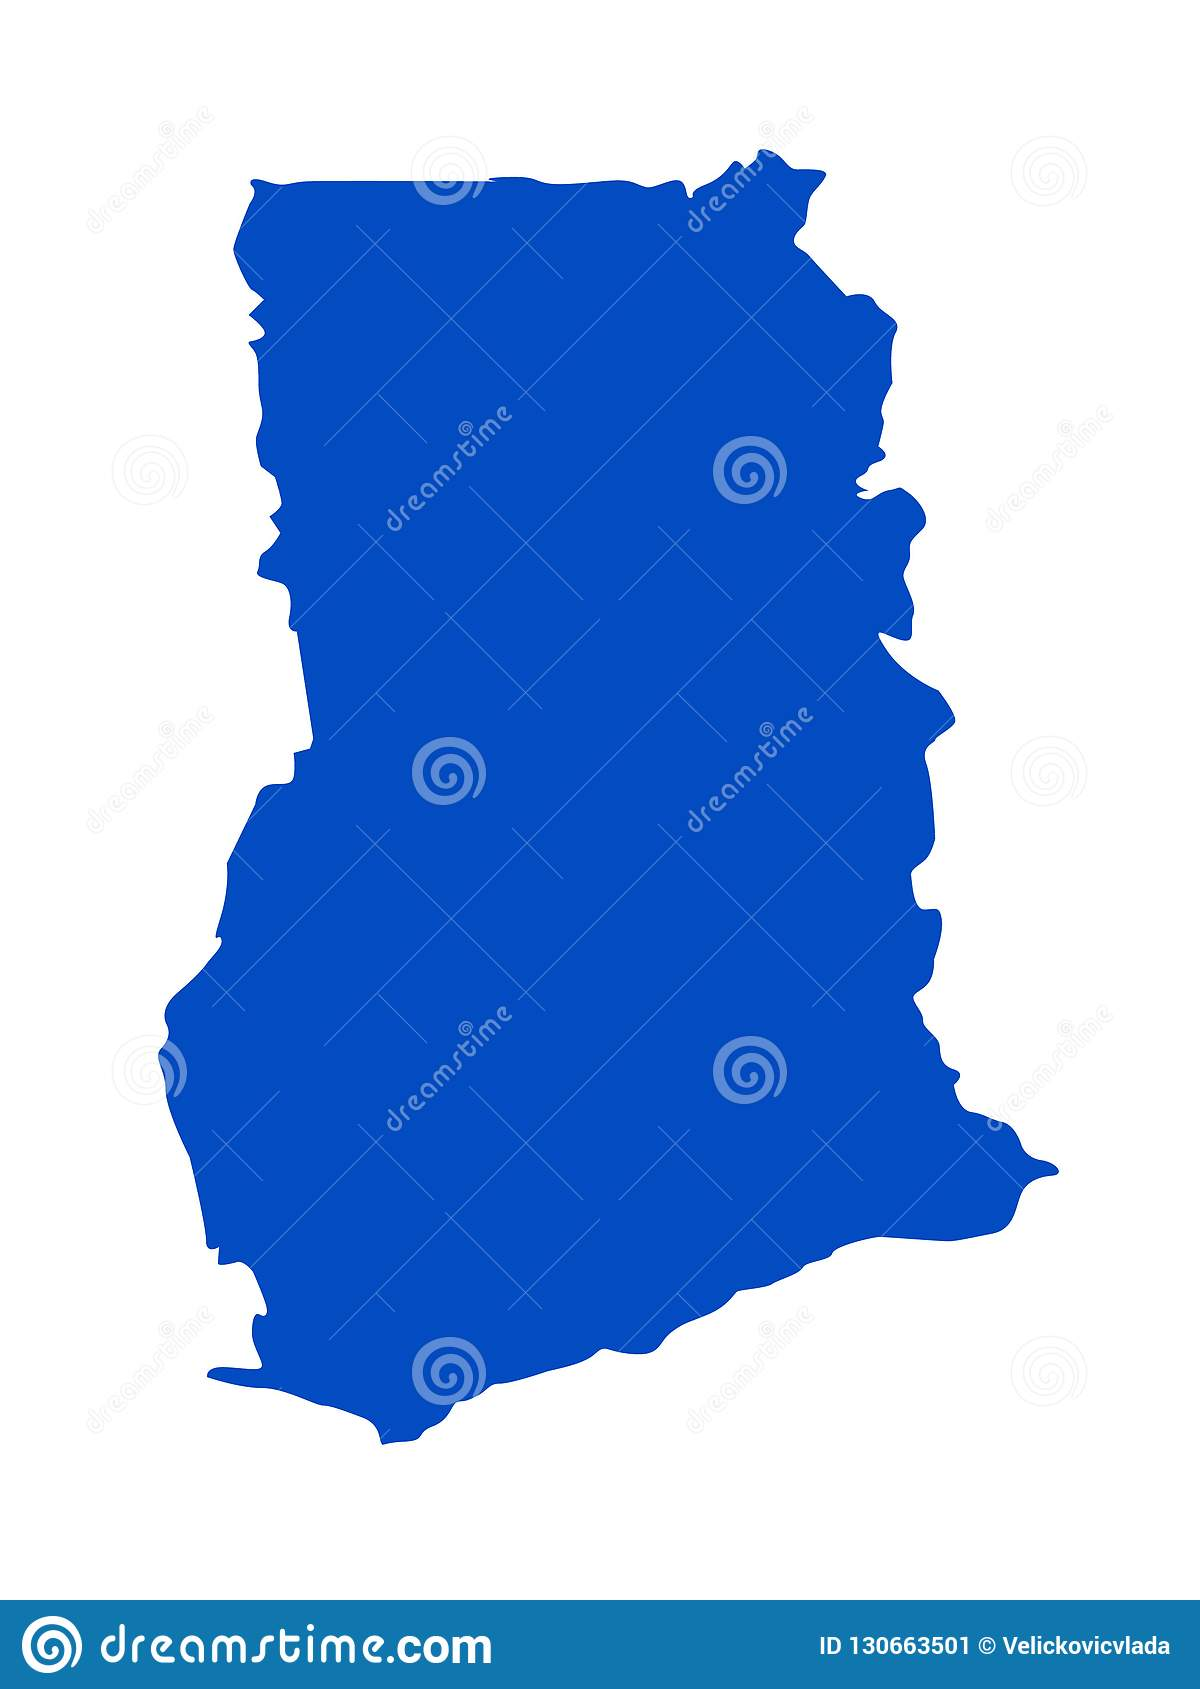 Picture of: Ghana Map Country In The West Africa Stock Vector Illustration Of Silhouette Topography 130663501